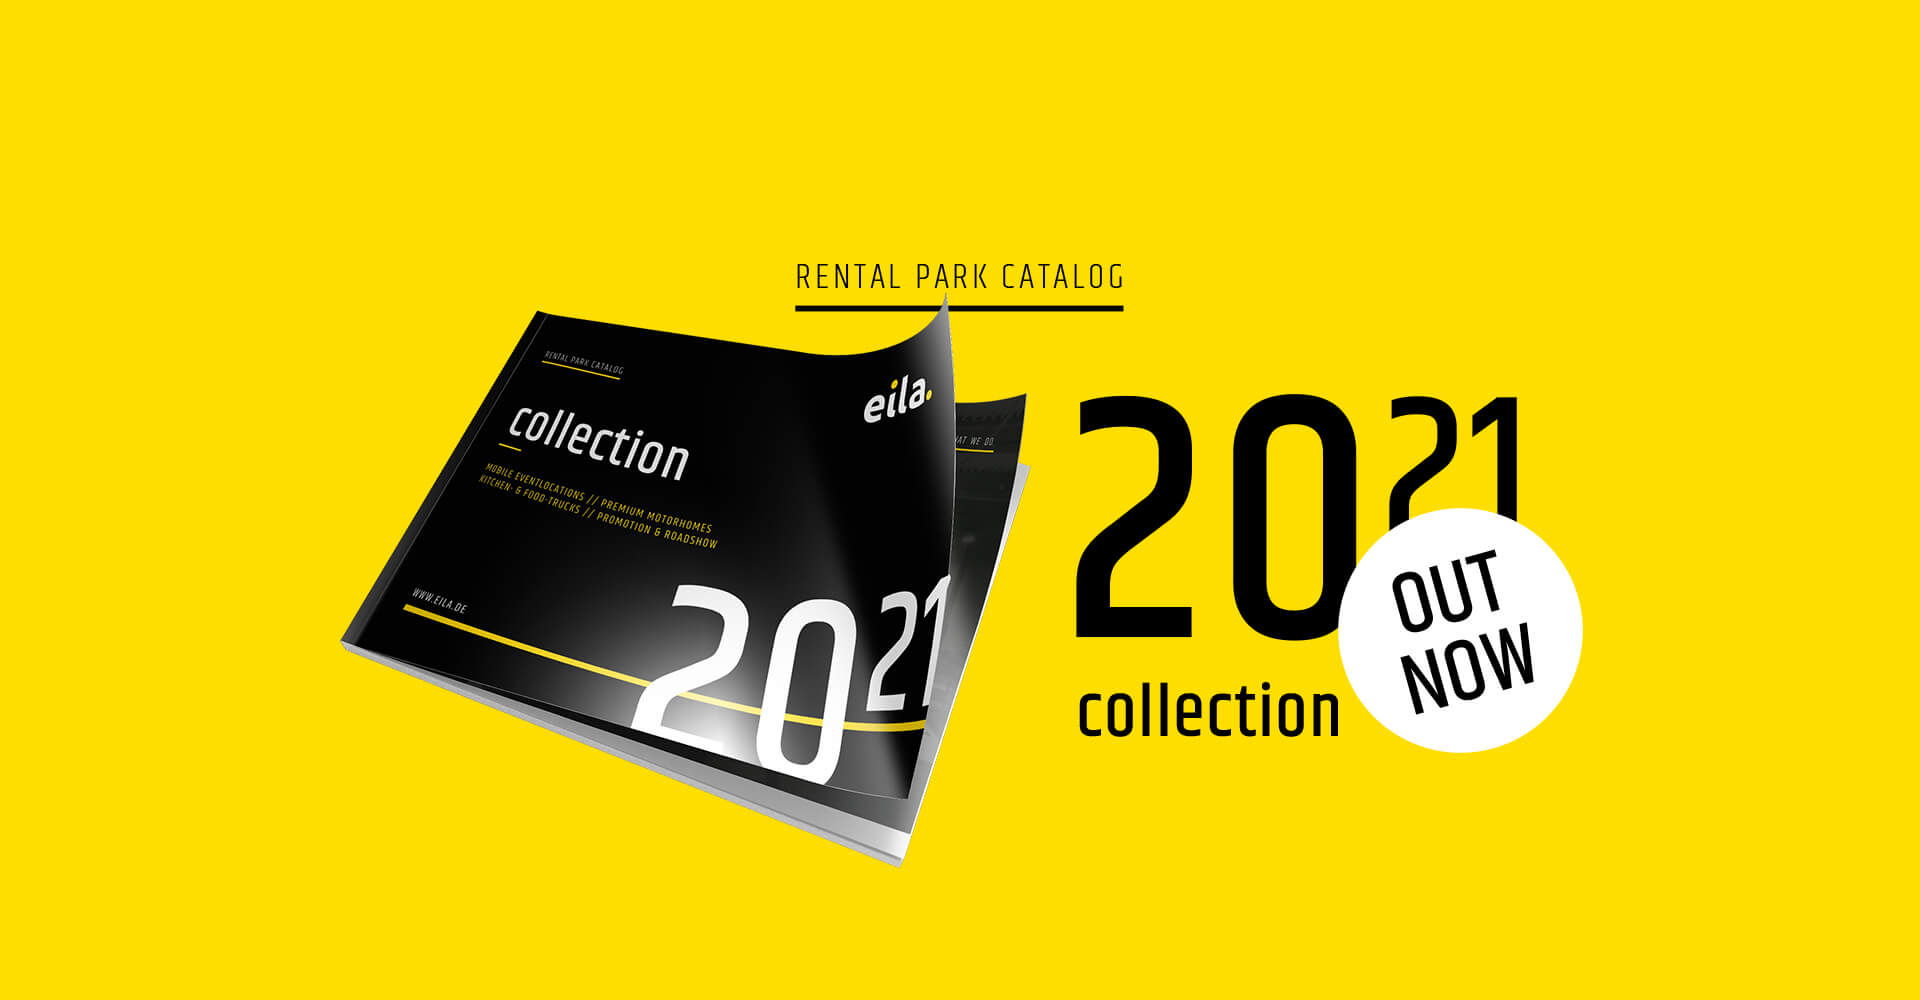 Rental park catalog collection 2021